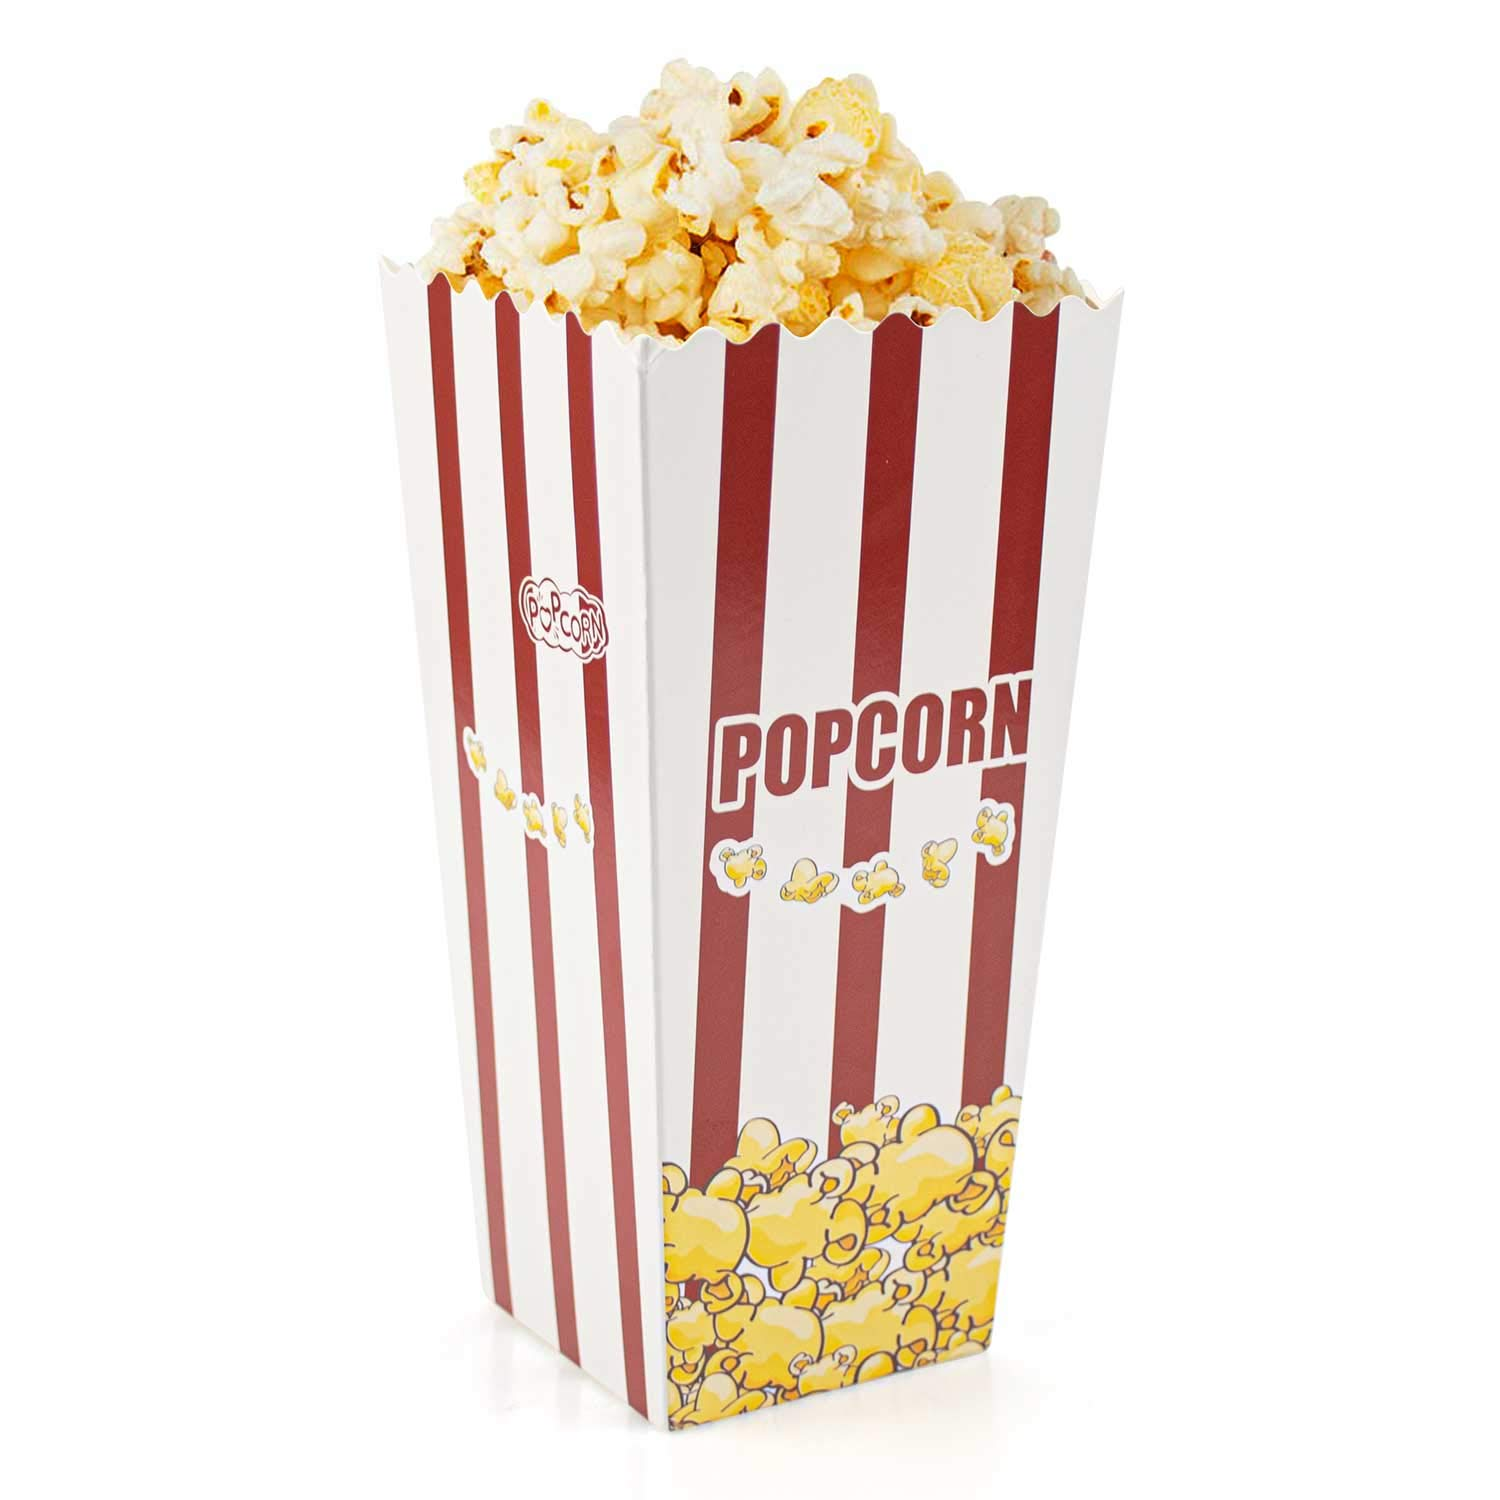 Lawei 100 Pack Open-Top Popcorn Boxes - 7.8 inch 46 oz Foldable Popcorn Containers by Lawei